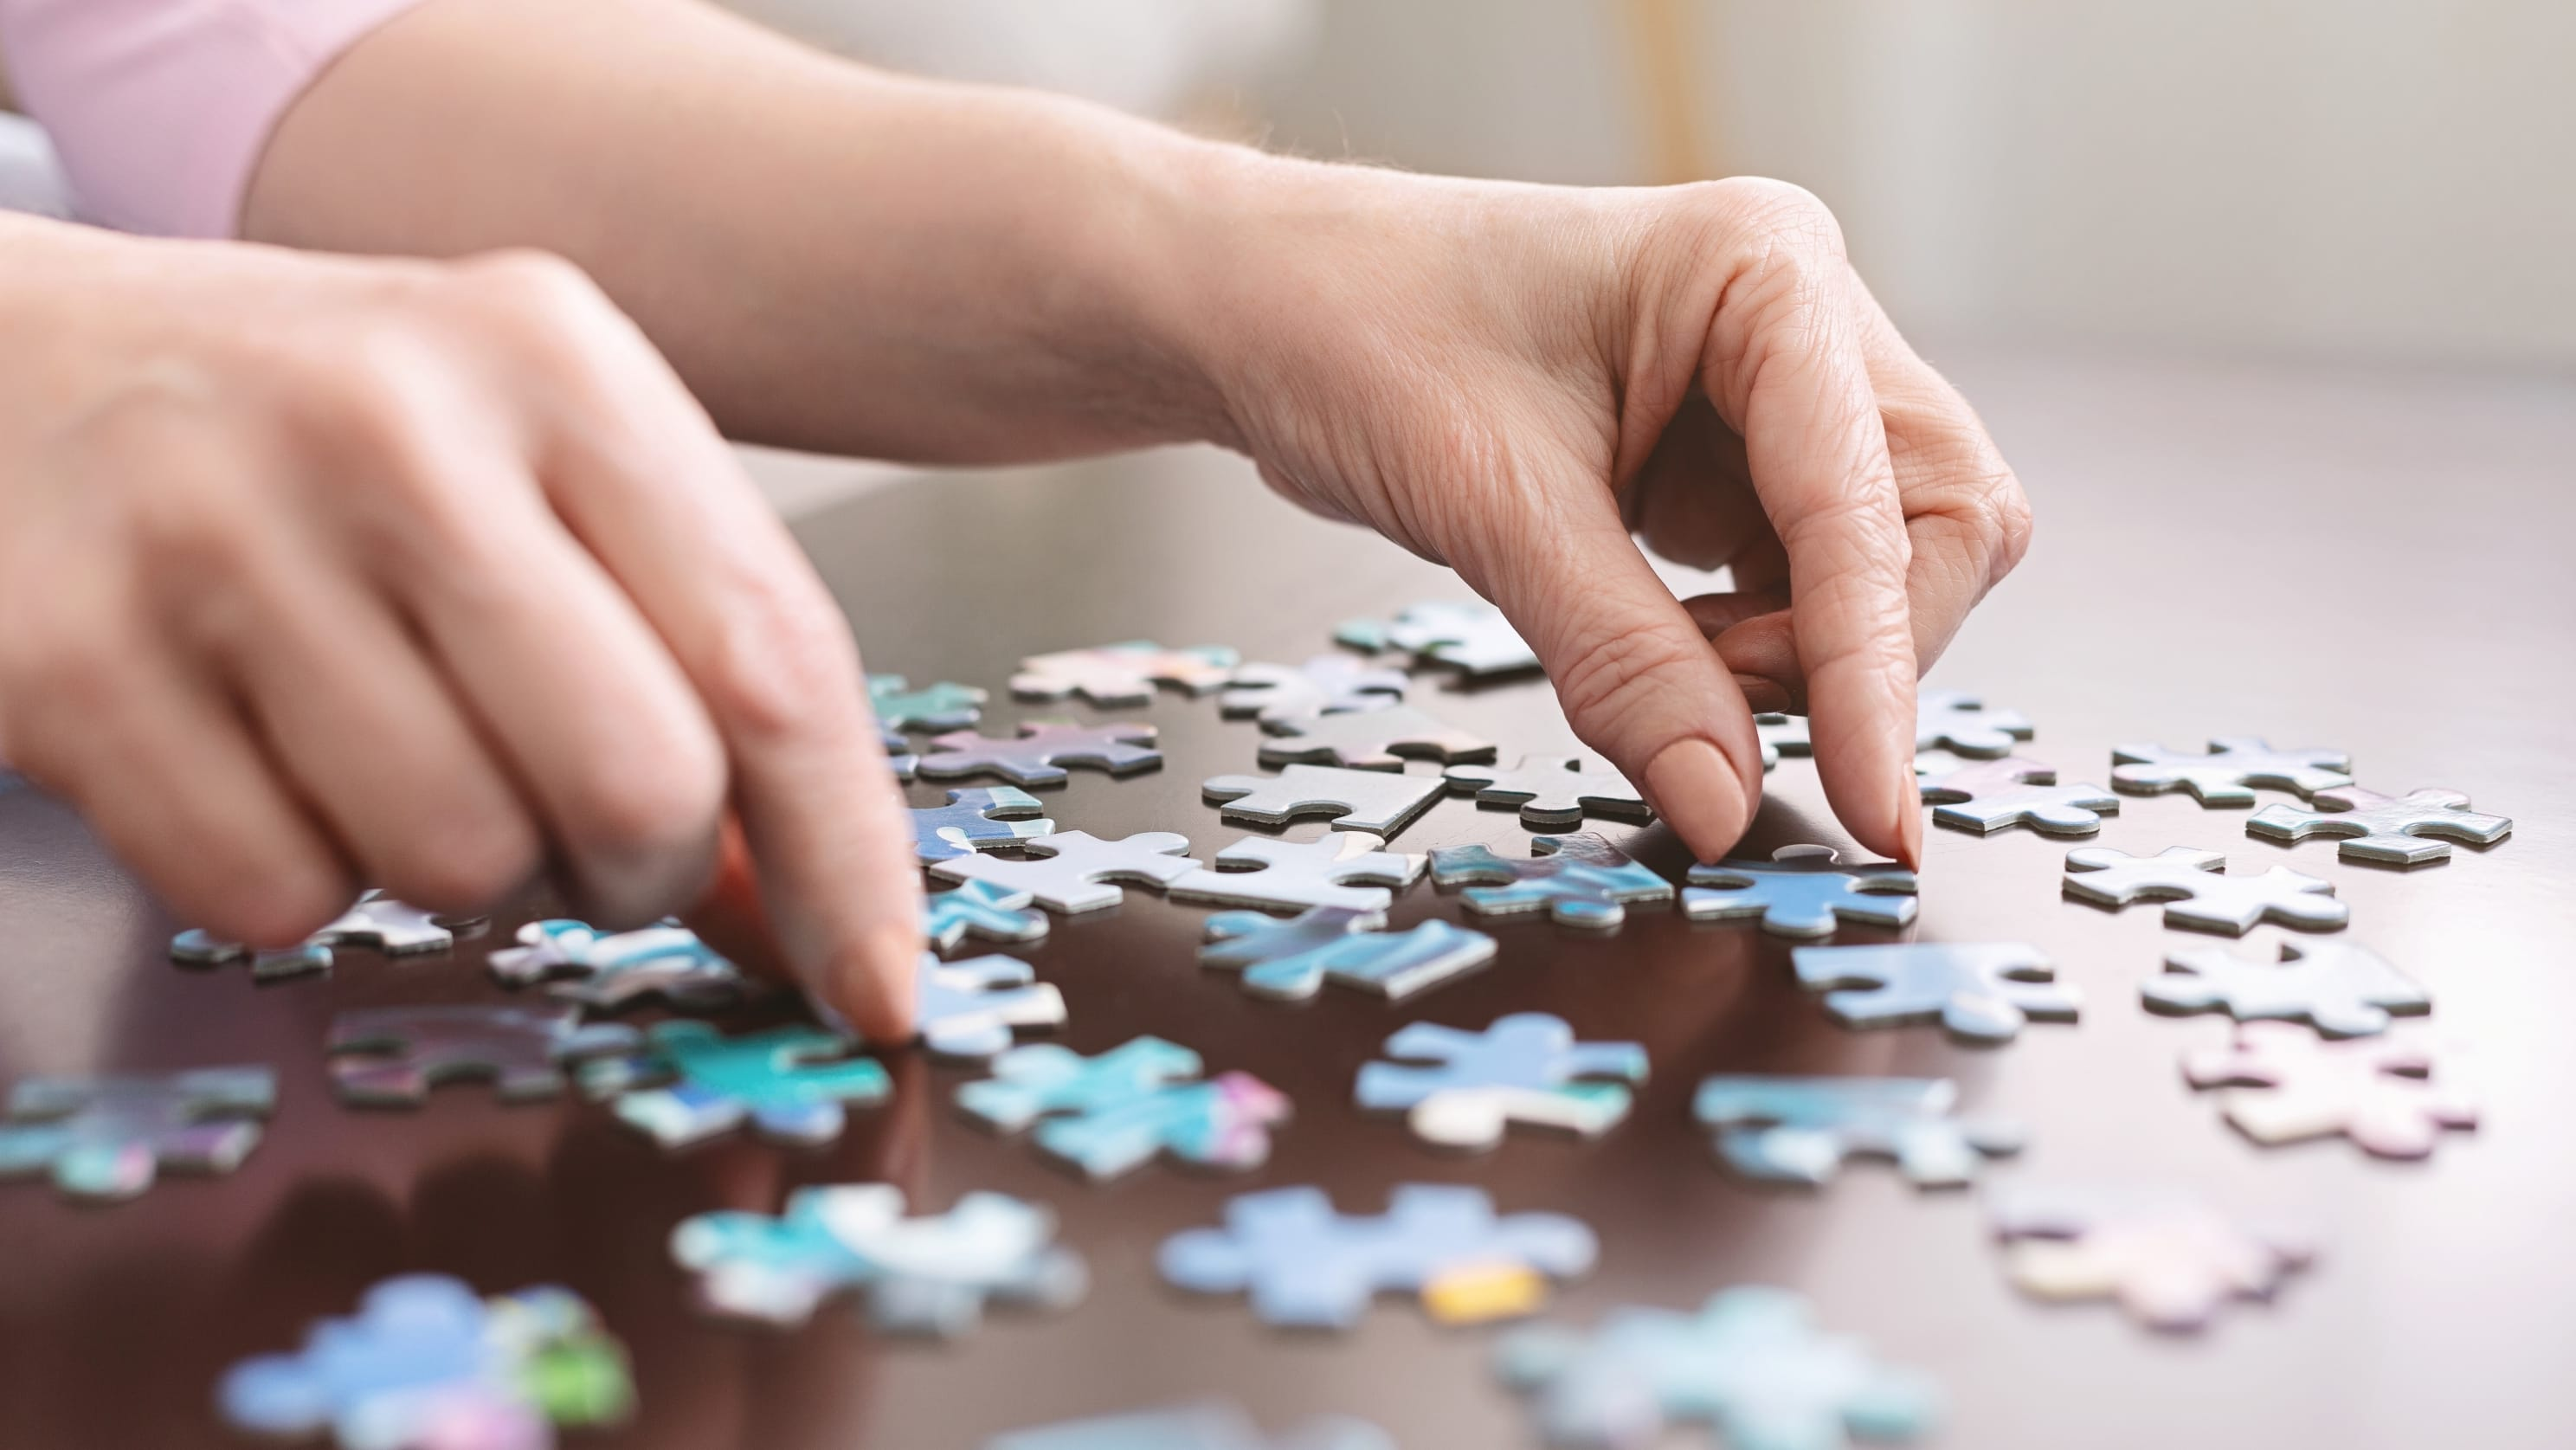 elderly person putting together a jigsaw puzzle, representing the confusion of dementia